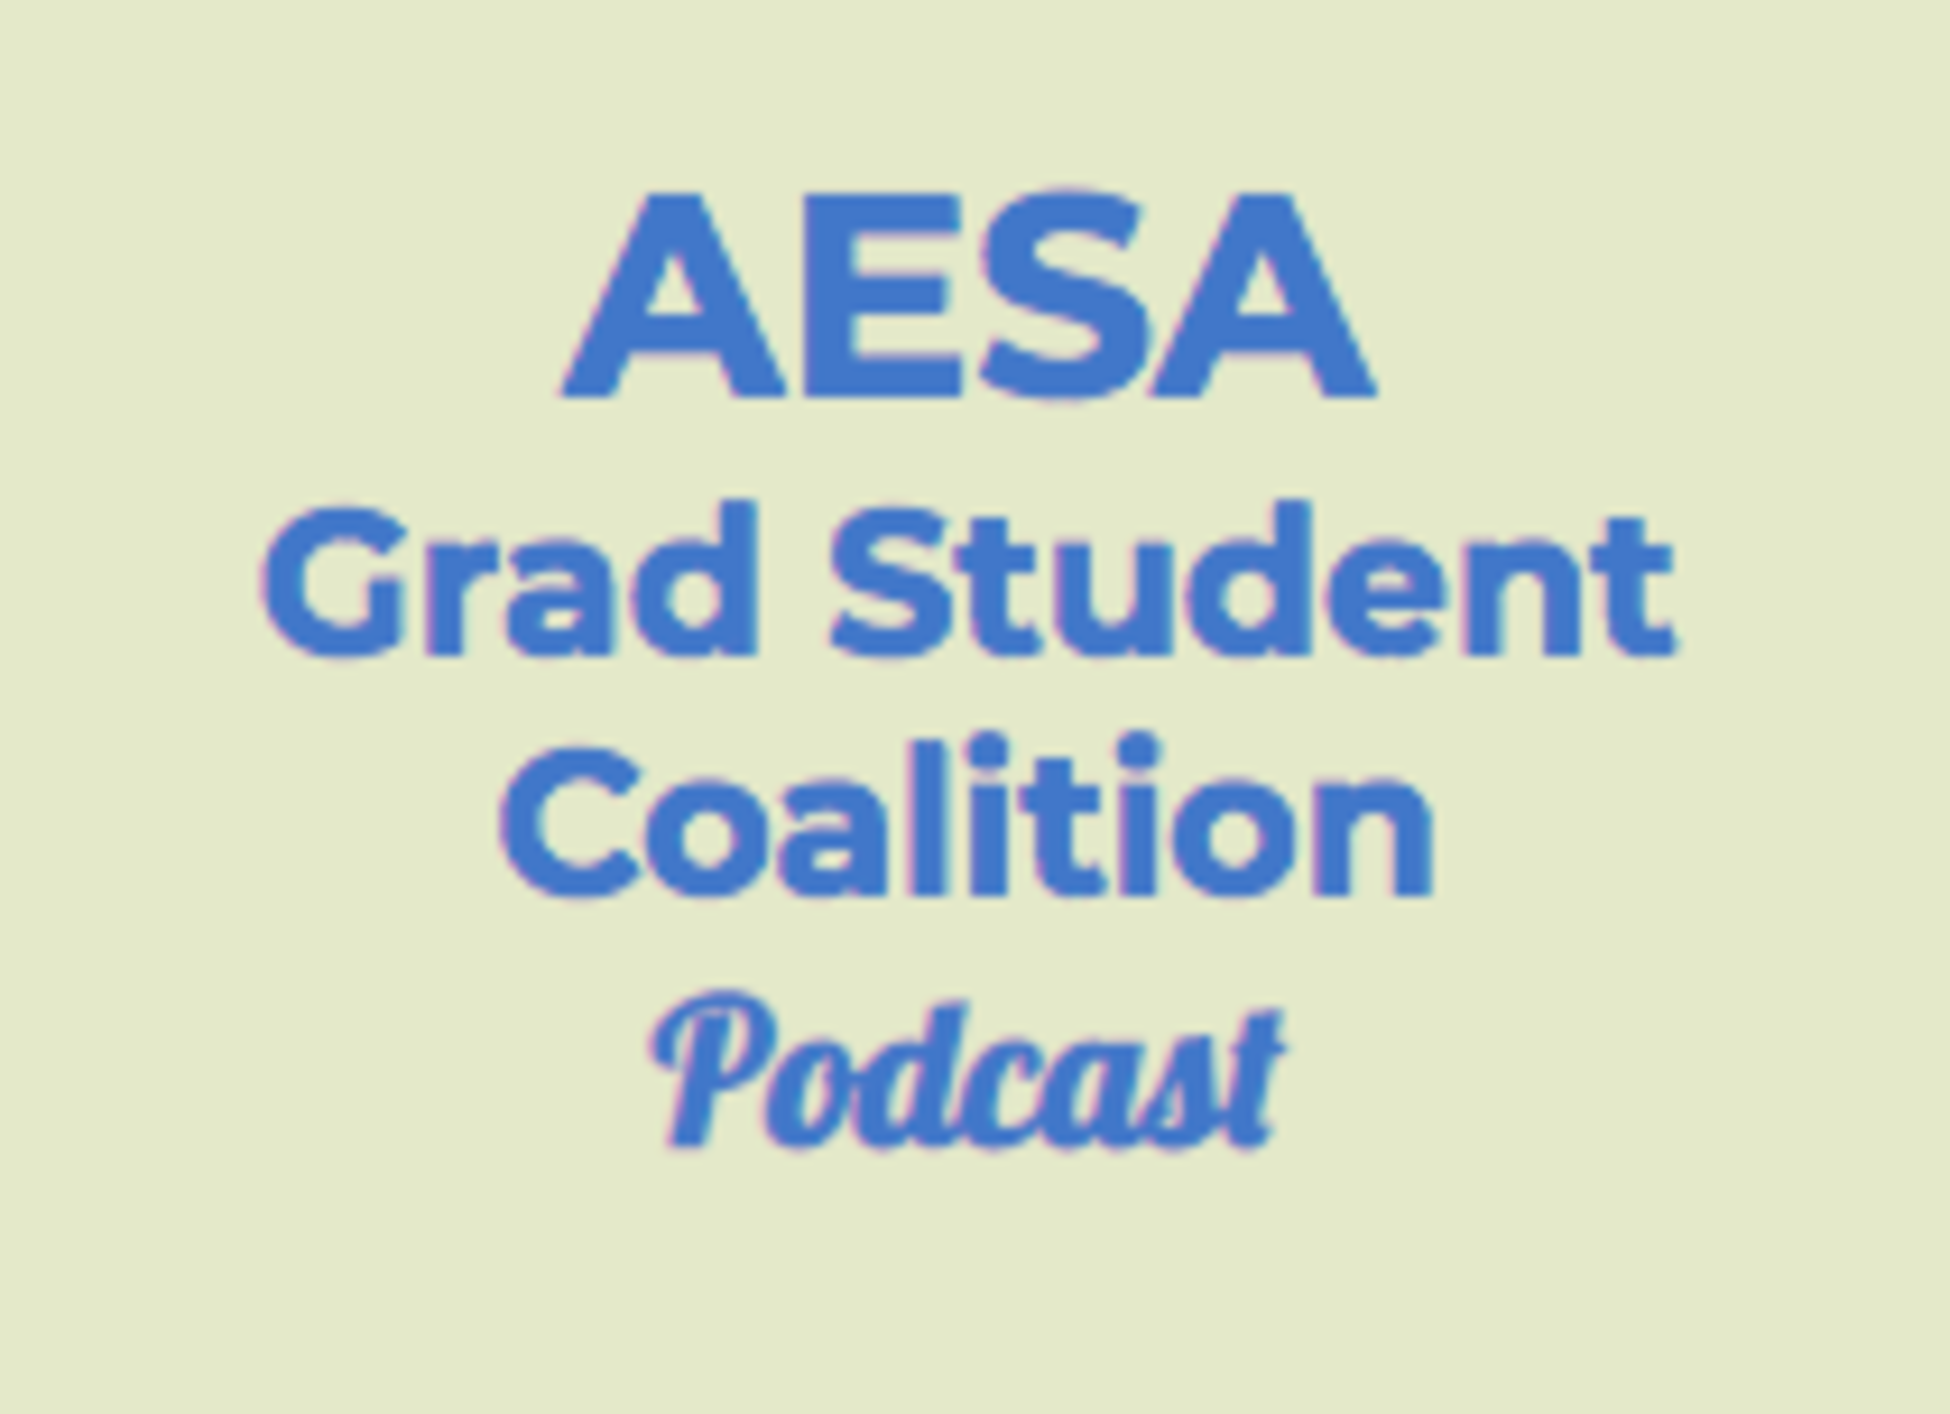 Episode 2: What are the GSC Events during the Annual Meeting?